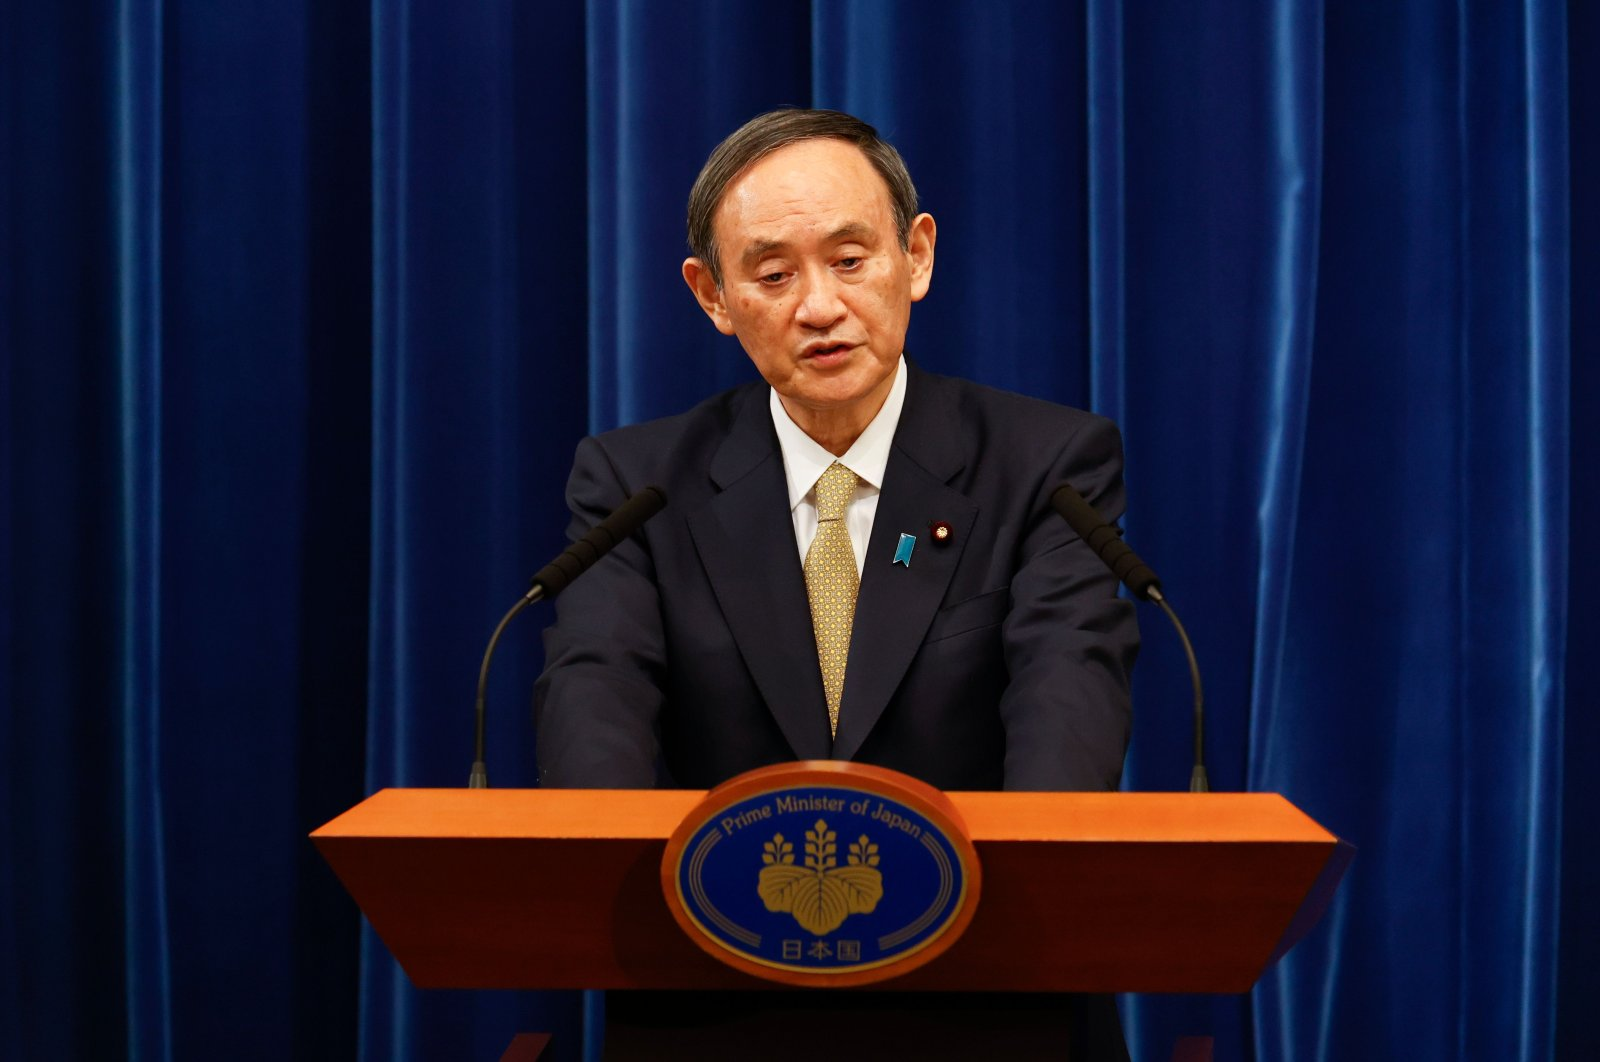 Japan's Prime Minister Yoshihide Suga speaks during a news conference at his official residence in Tokyo, Japan, Jan. 13, 2021. (AFP Photo)